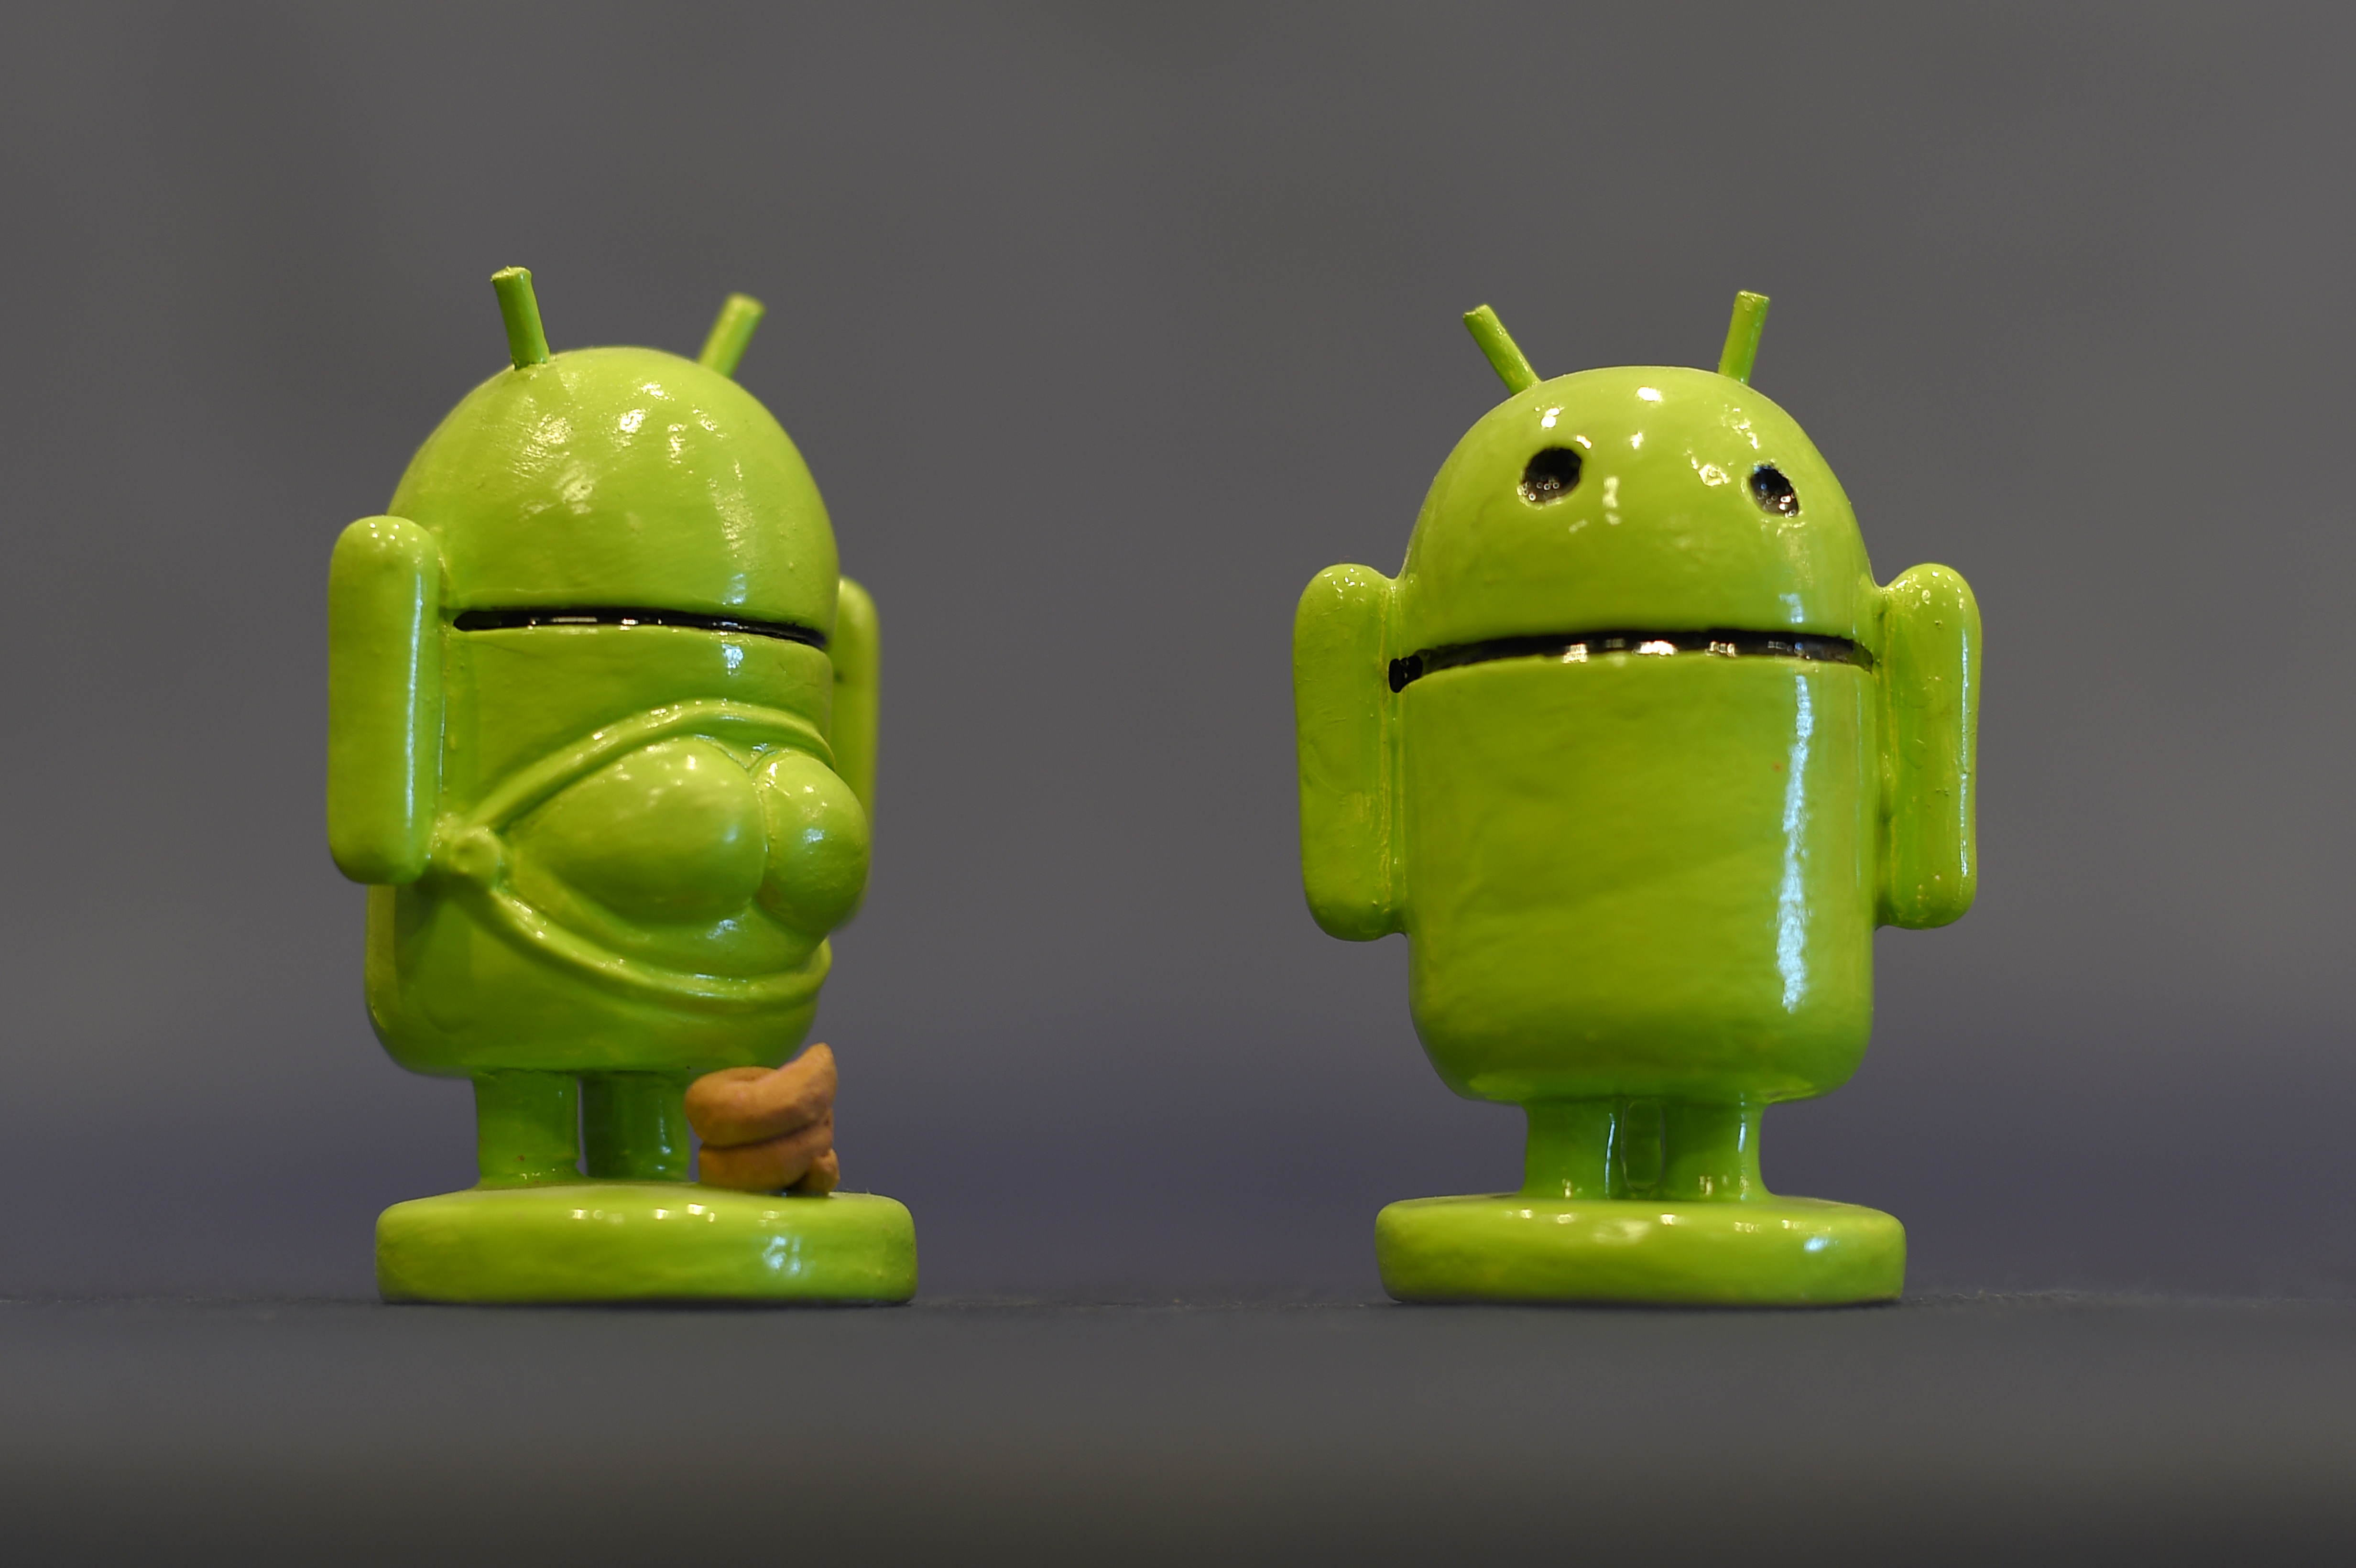 """A picture taken on November 19, 2015 shows ceramic figurines representing Android logo, called """"Caganers"""" during their presentation in Torroella de Montgri, near Gerona. Statuettes of well-known people defecating are a strong Christmas tradition in Catalonia, dating back to the 18th century as Catalans hide caganers in Christmas Nativity scenes and invite friends to find them. The figures symbolize fertilization, hope and prosperity for the coming year. AFP PHOTO / LLUIS GENE / AFP PHOTO / LLUIS GENE"""